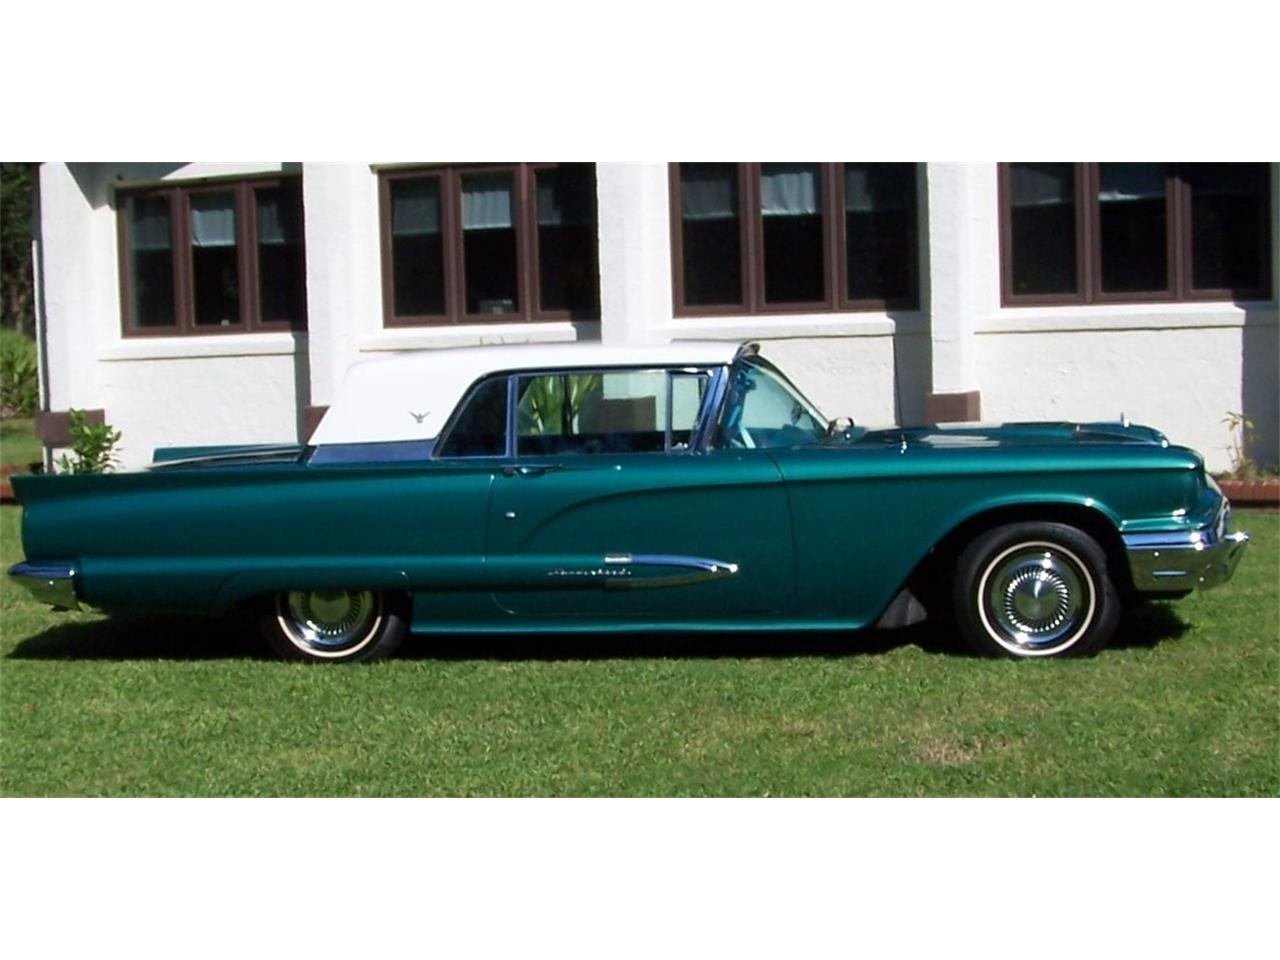 Large Picture of '59 Ford Thunderbird - $15,500.00 Offered by a Private Seller - LLRY